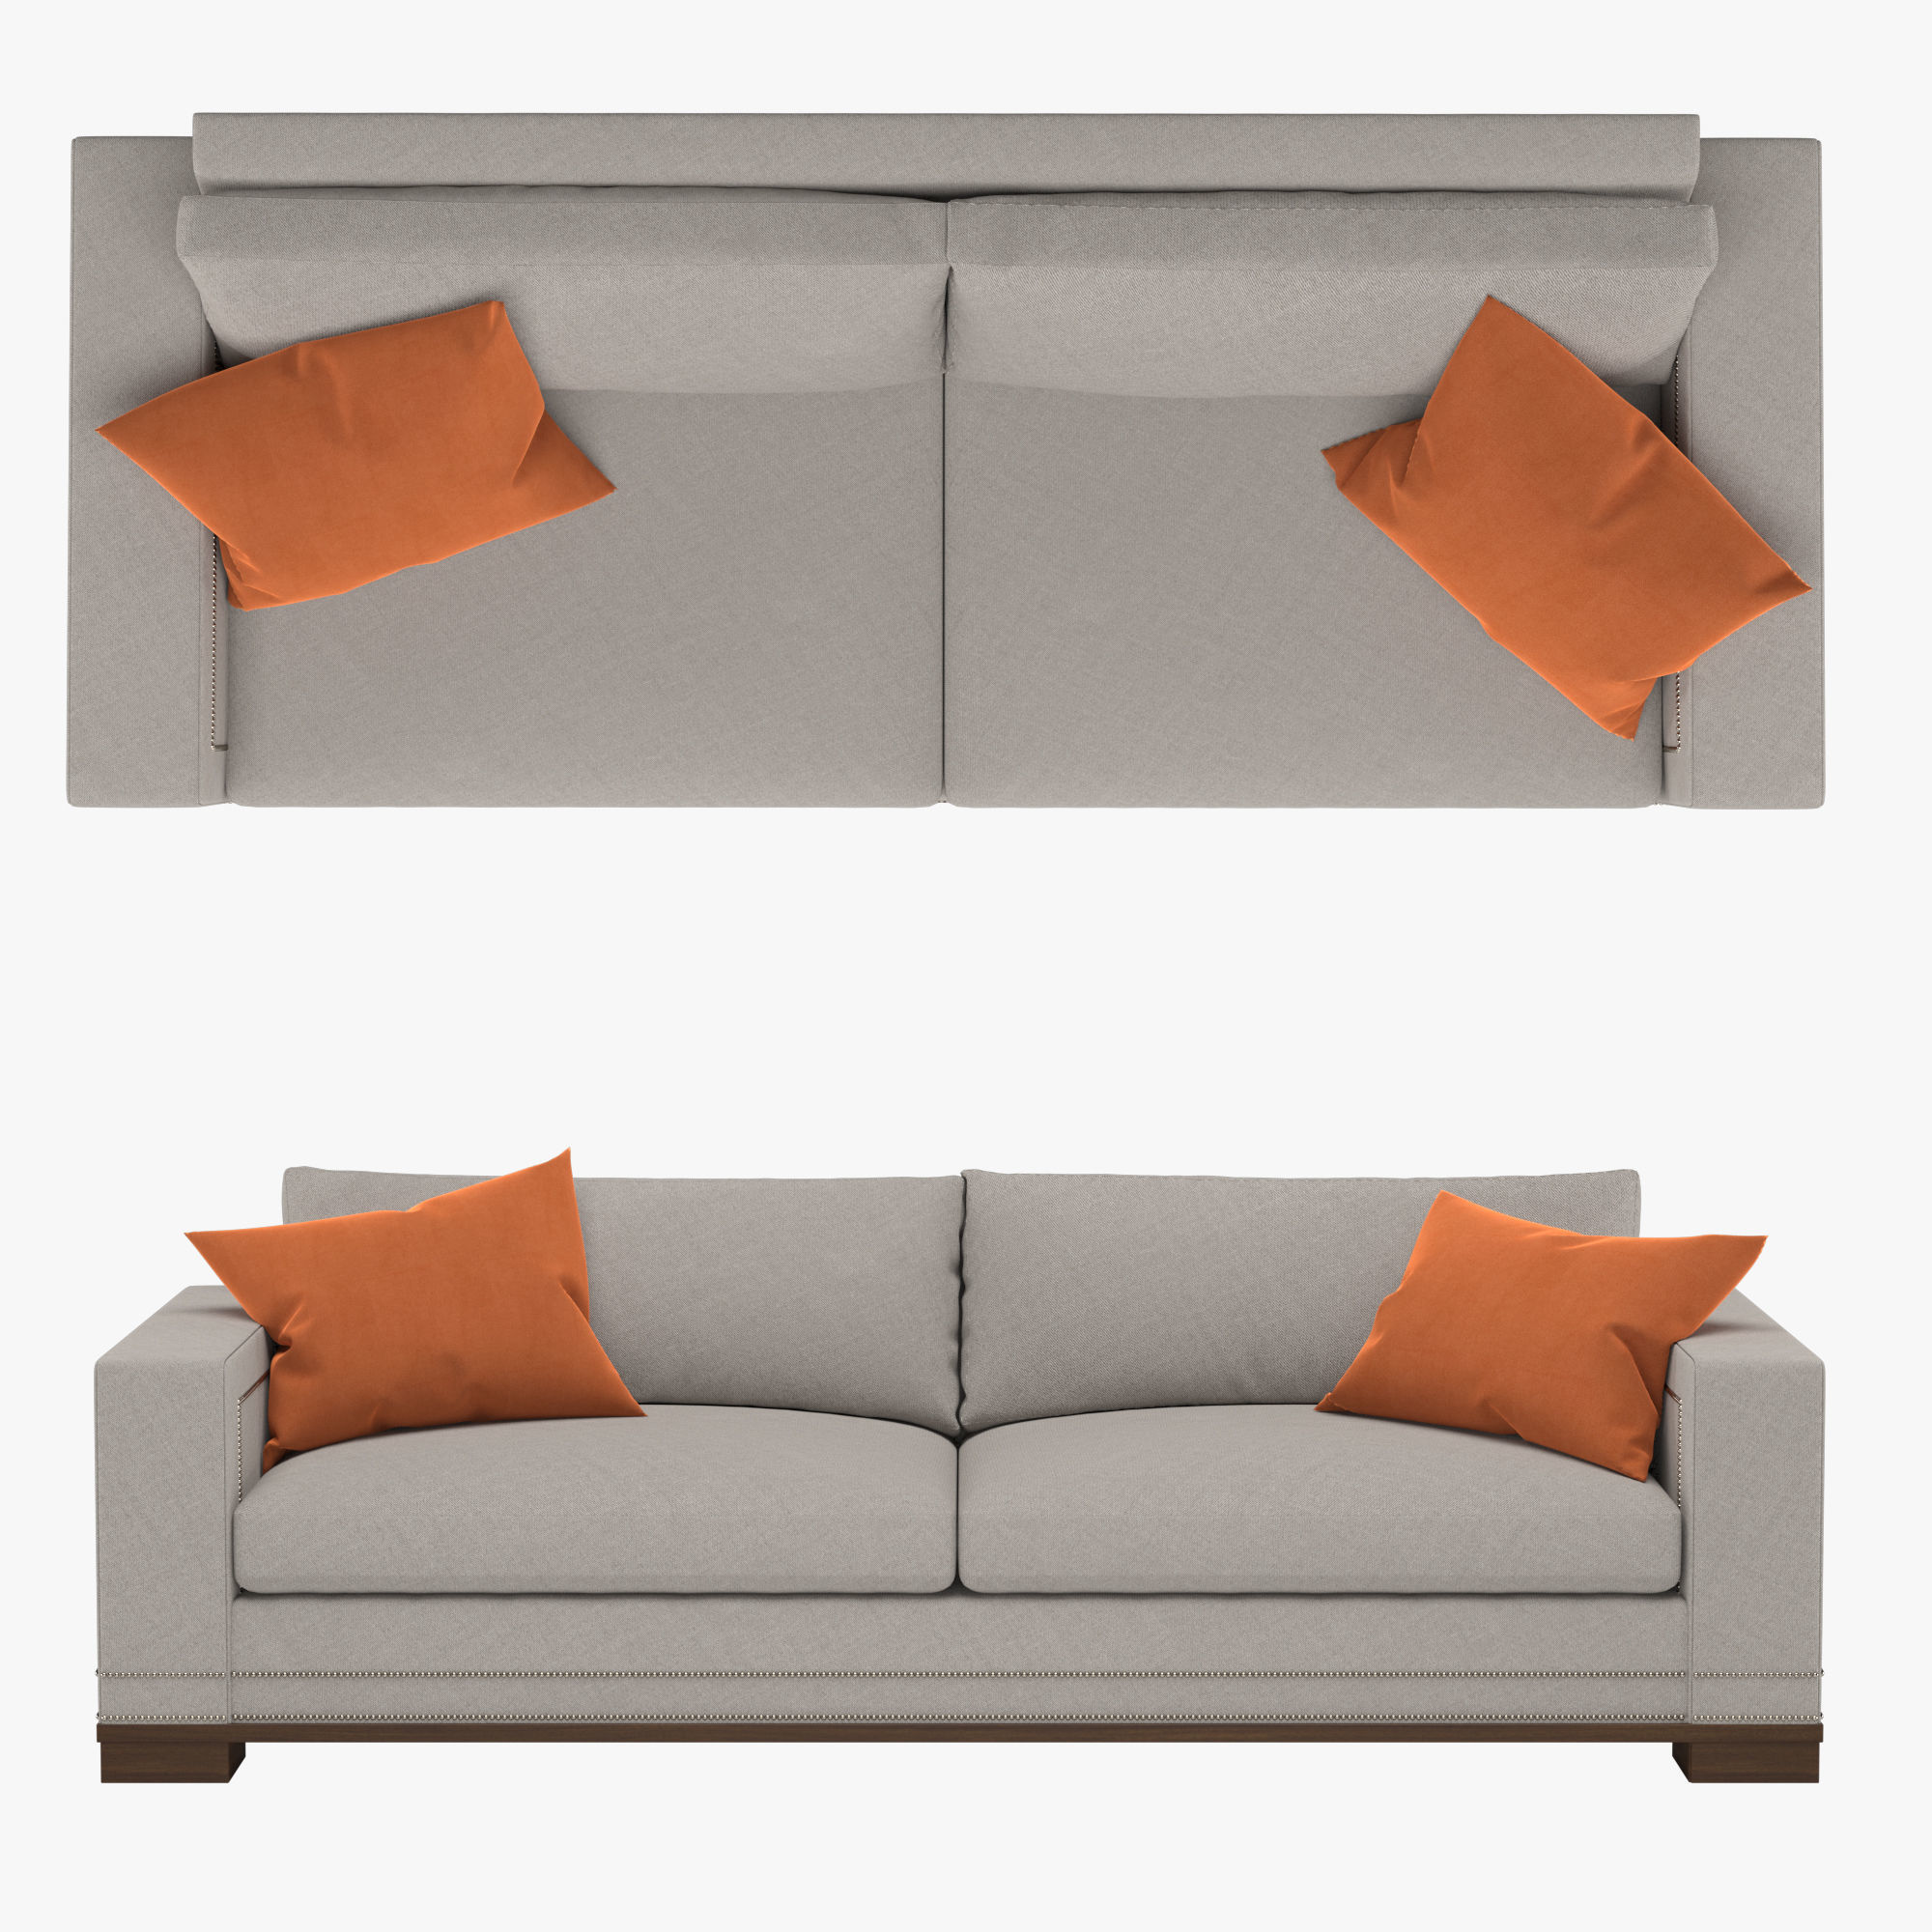 Seat Weiß Vanguard Michael Weiss Abingdon Two Seat Sofa 3d Model